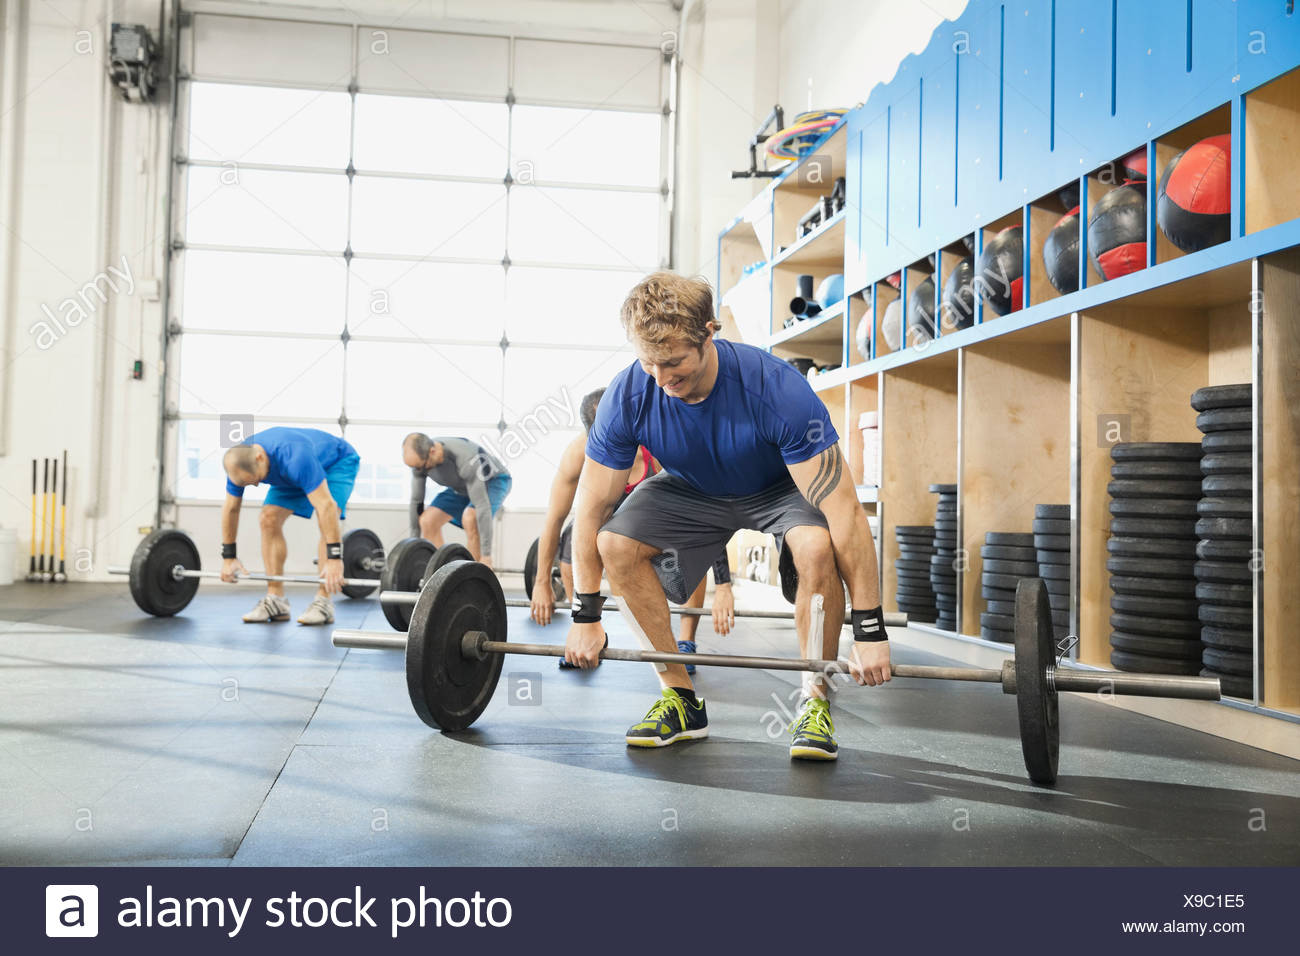 Man getting into position for clean and jerk lift - Stock Image